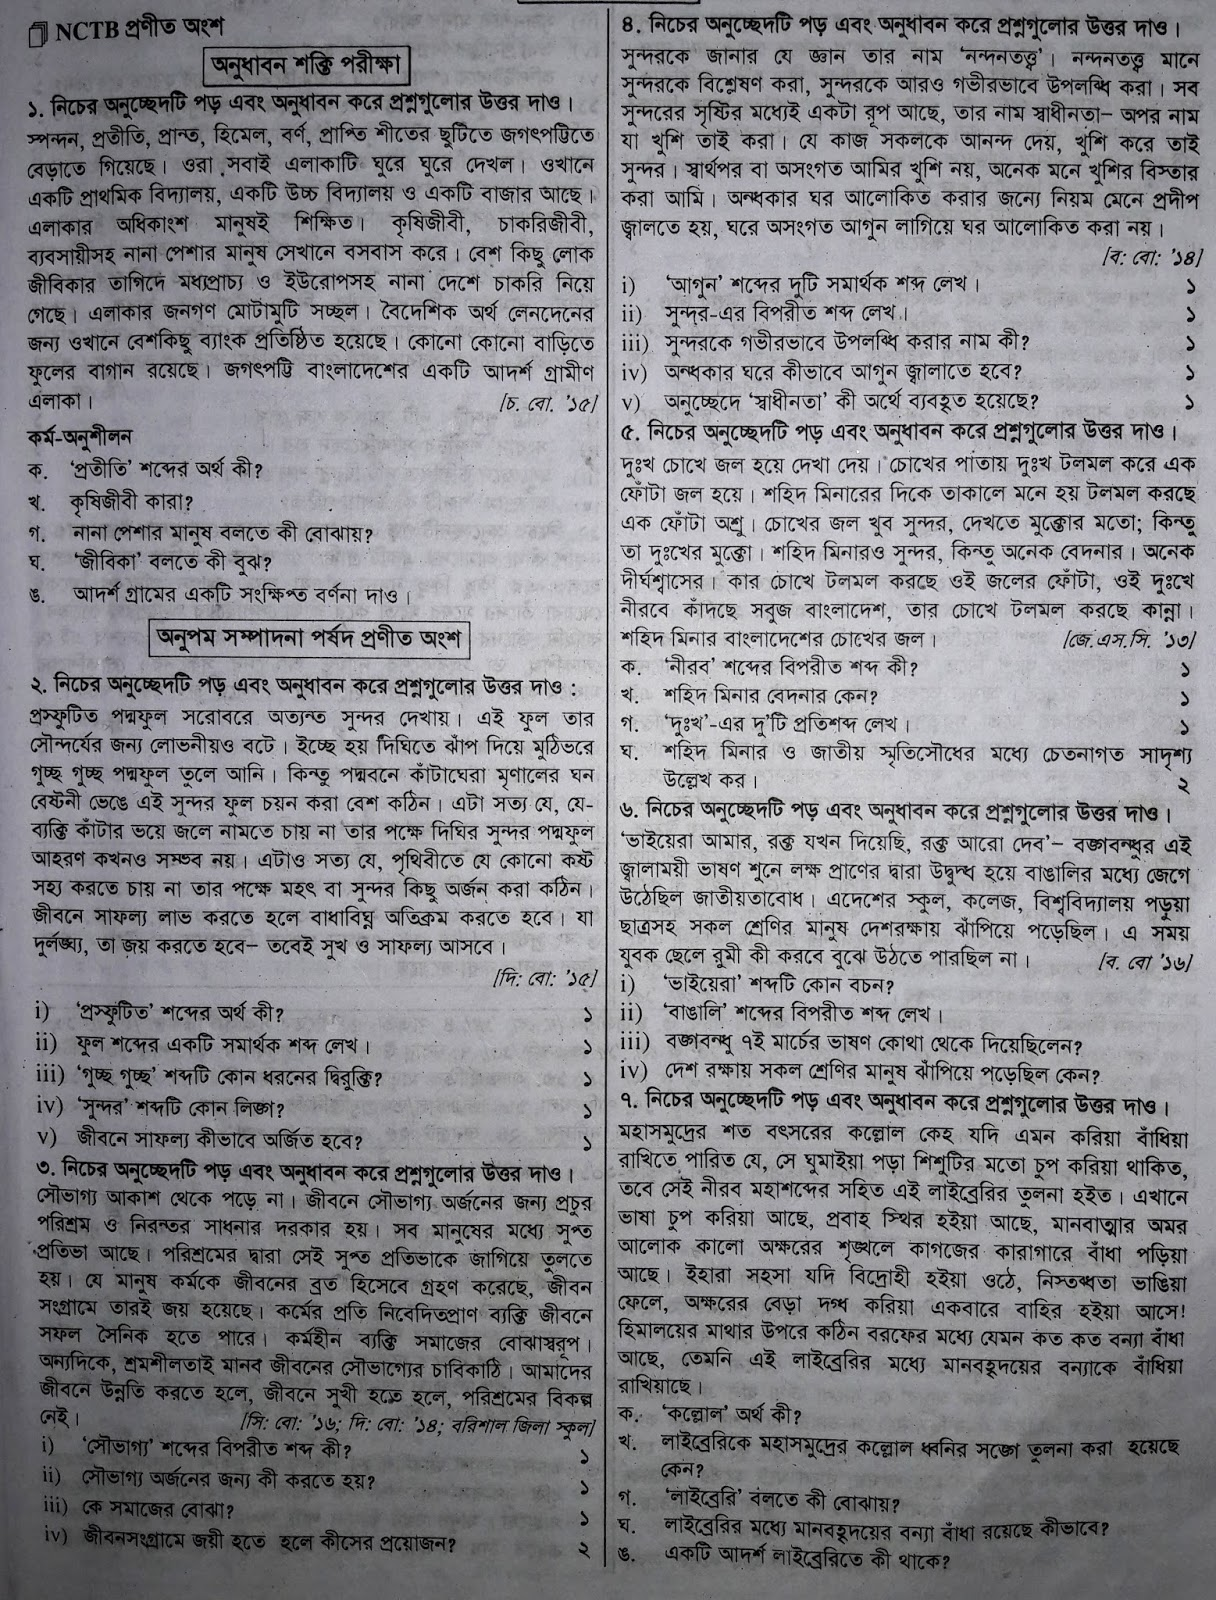 jsc bangla suggestion 2020, 2nd paper, exam question paper, model question, mcq question, question pattern, preparation for dhaka board, all boards